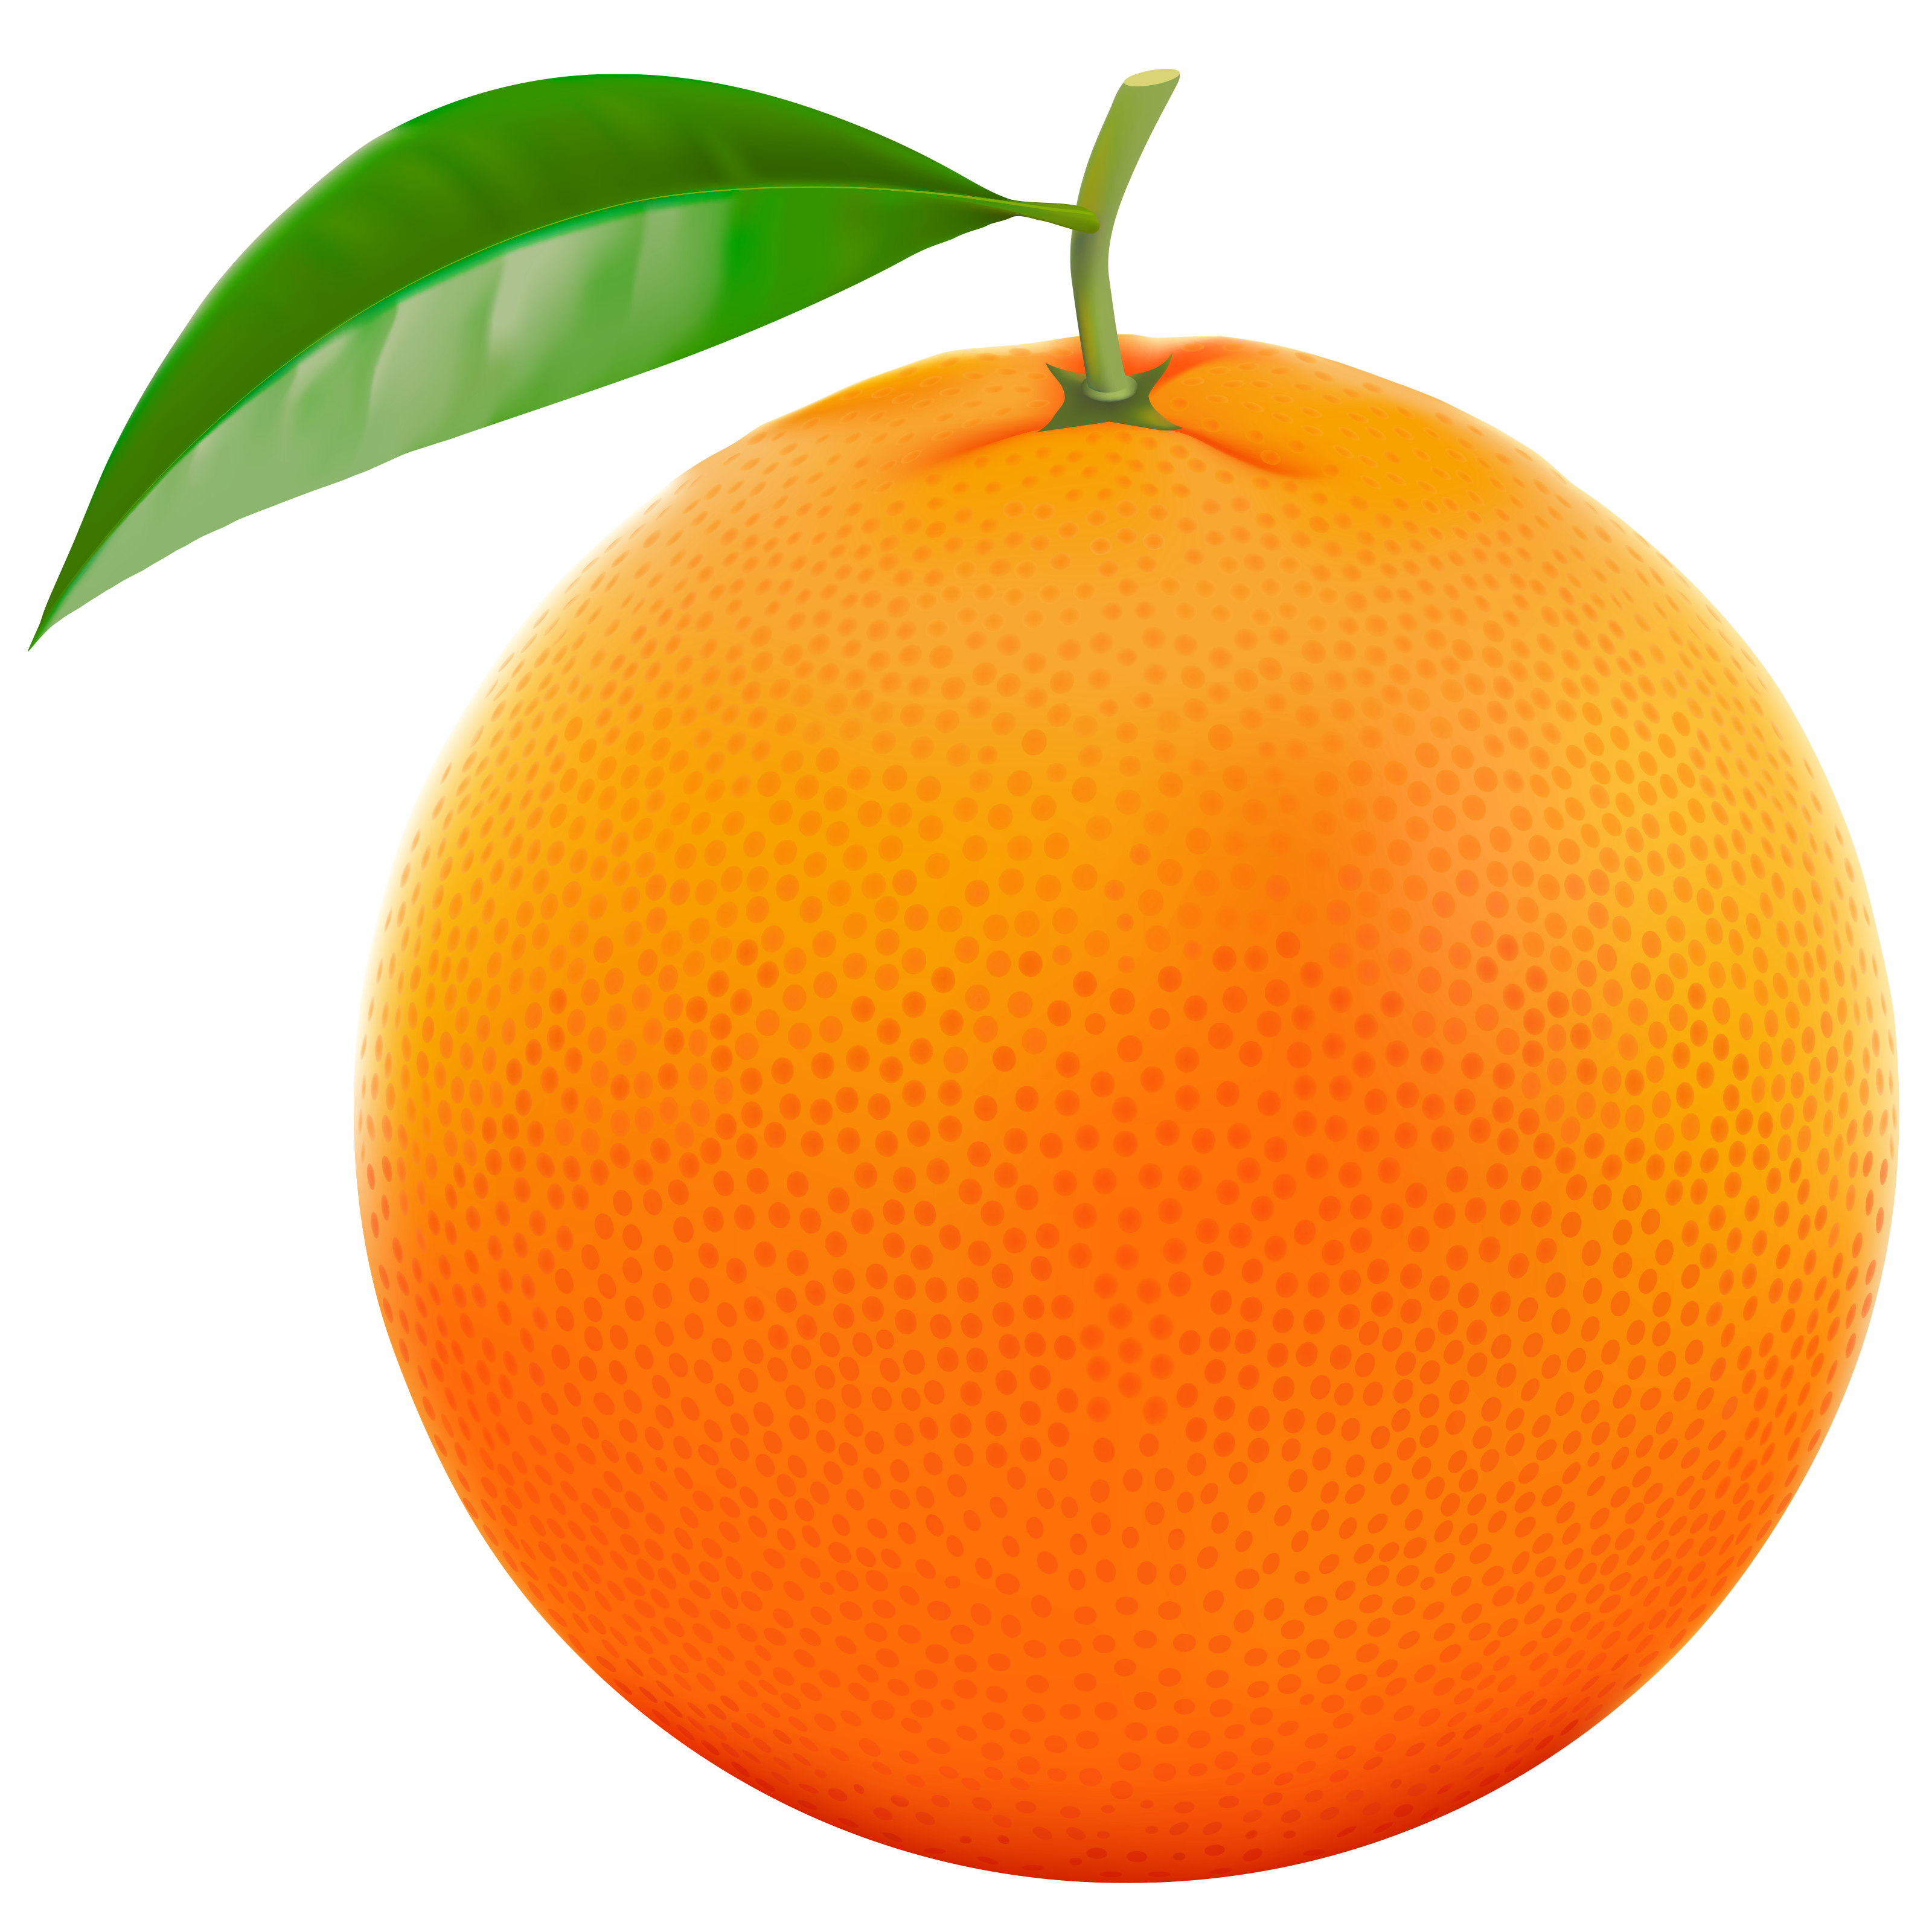 Orange clipart #1, Download drawings